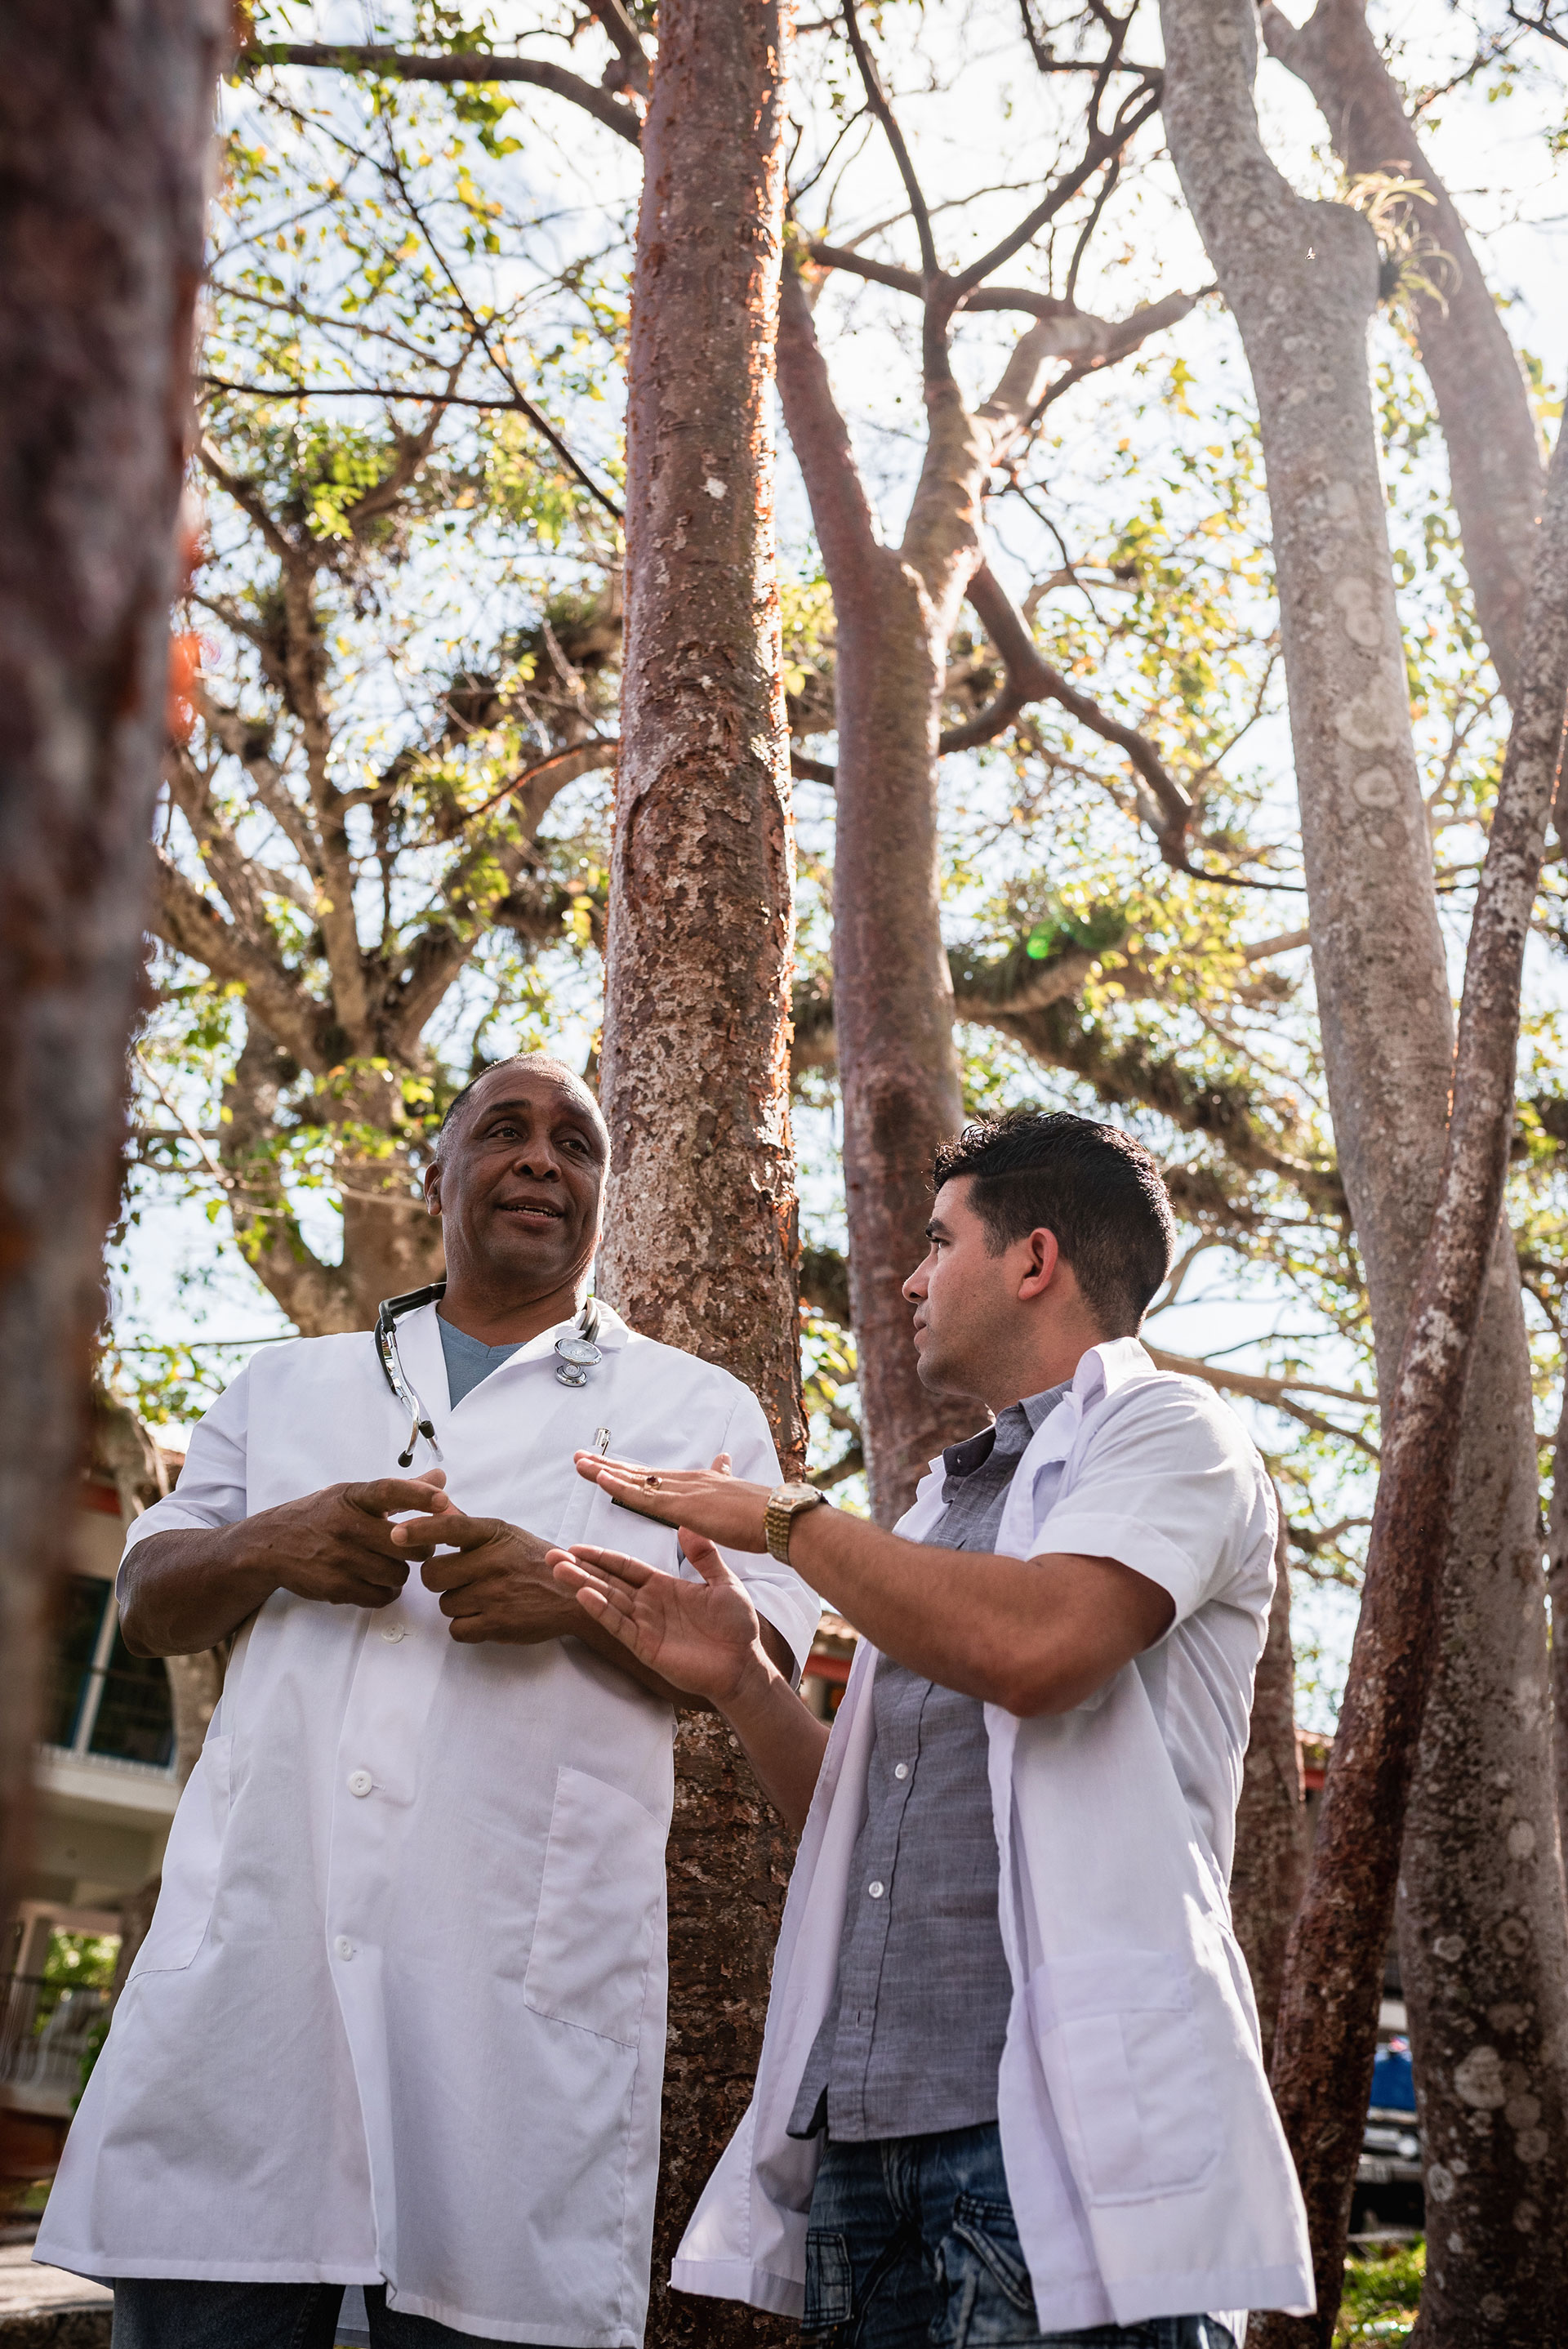 Alternative medicine blooms in Cuba | The GroundTruth Project